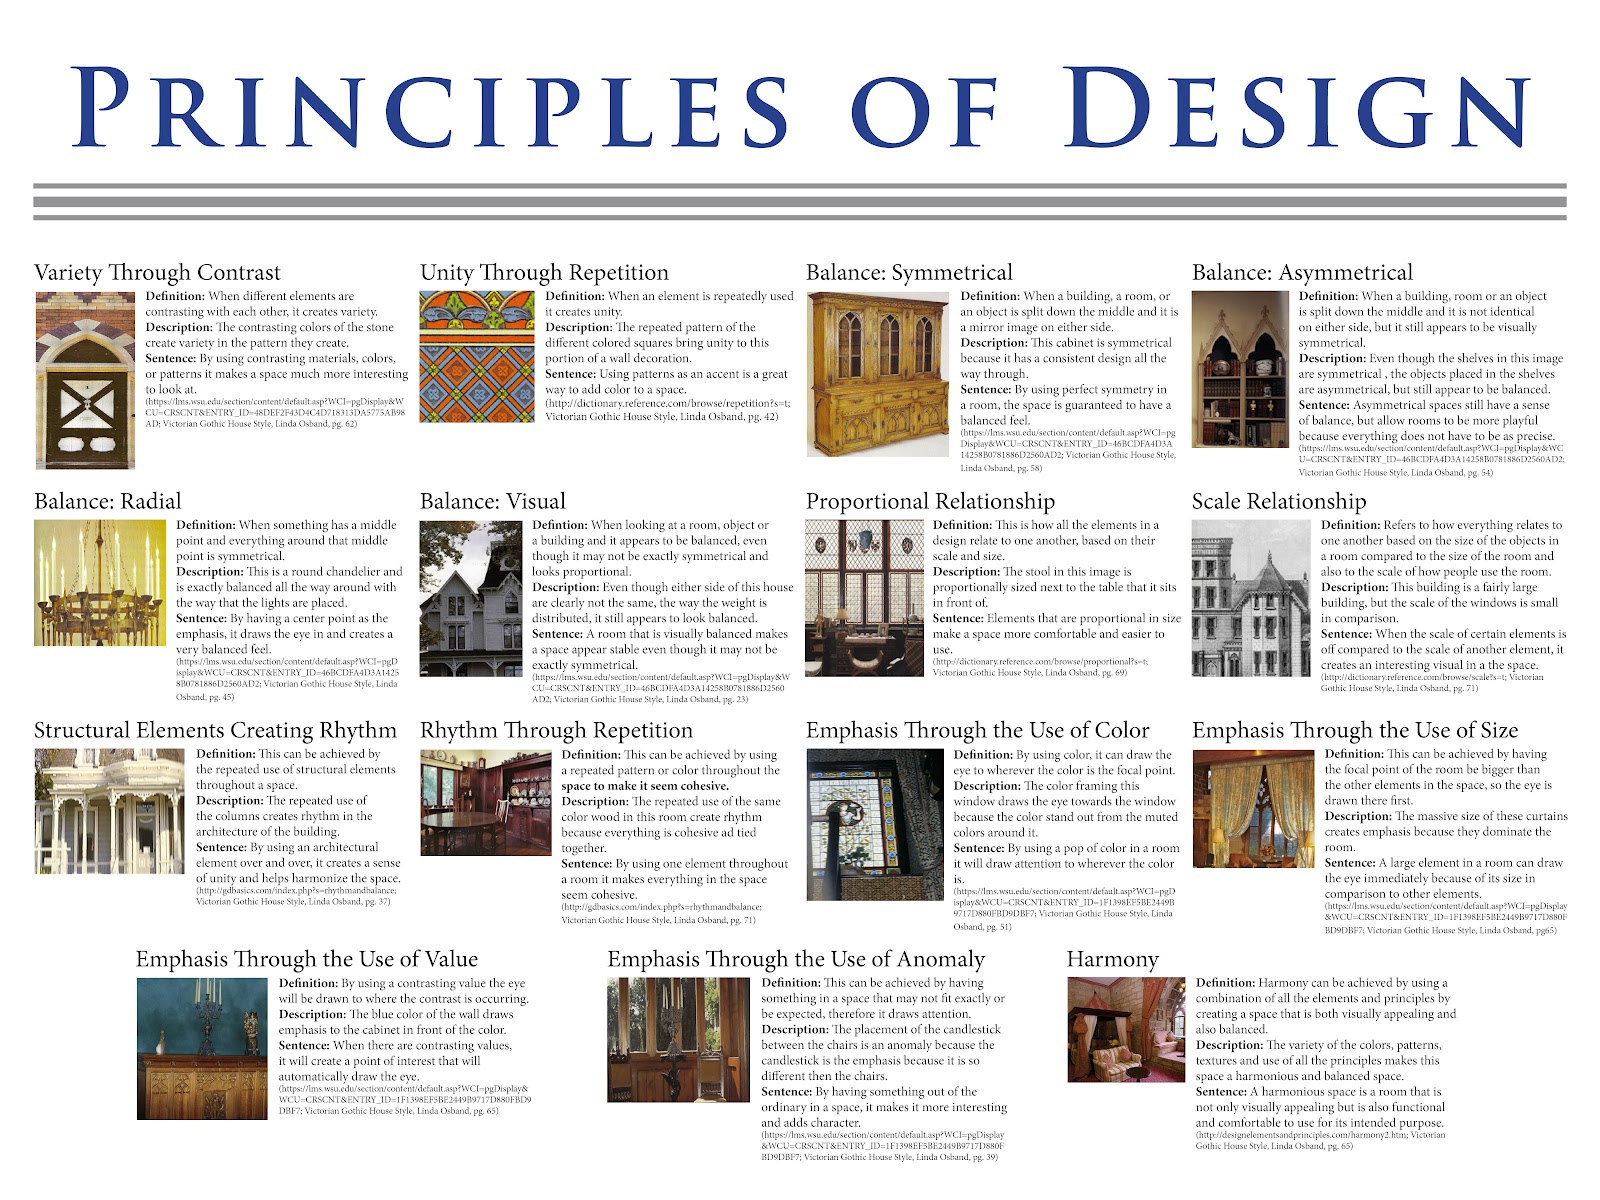 List Of Elements Of Design : Principles of design visual communication